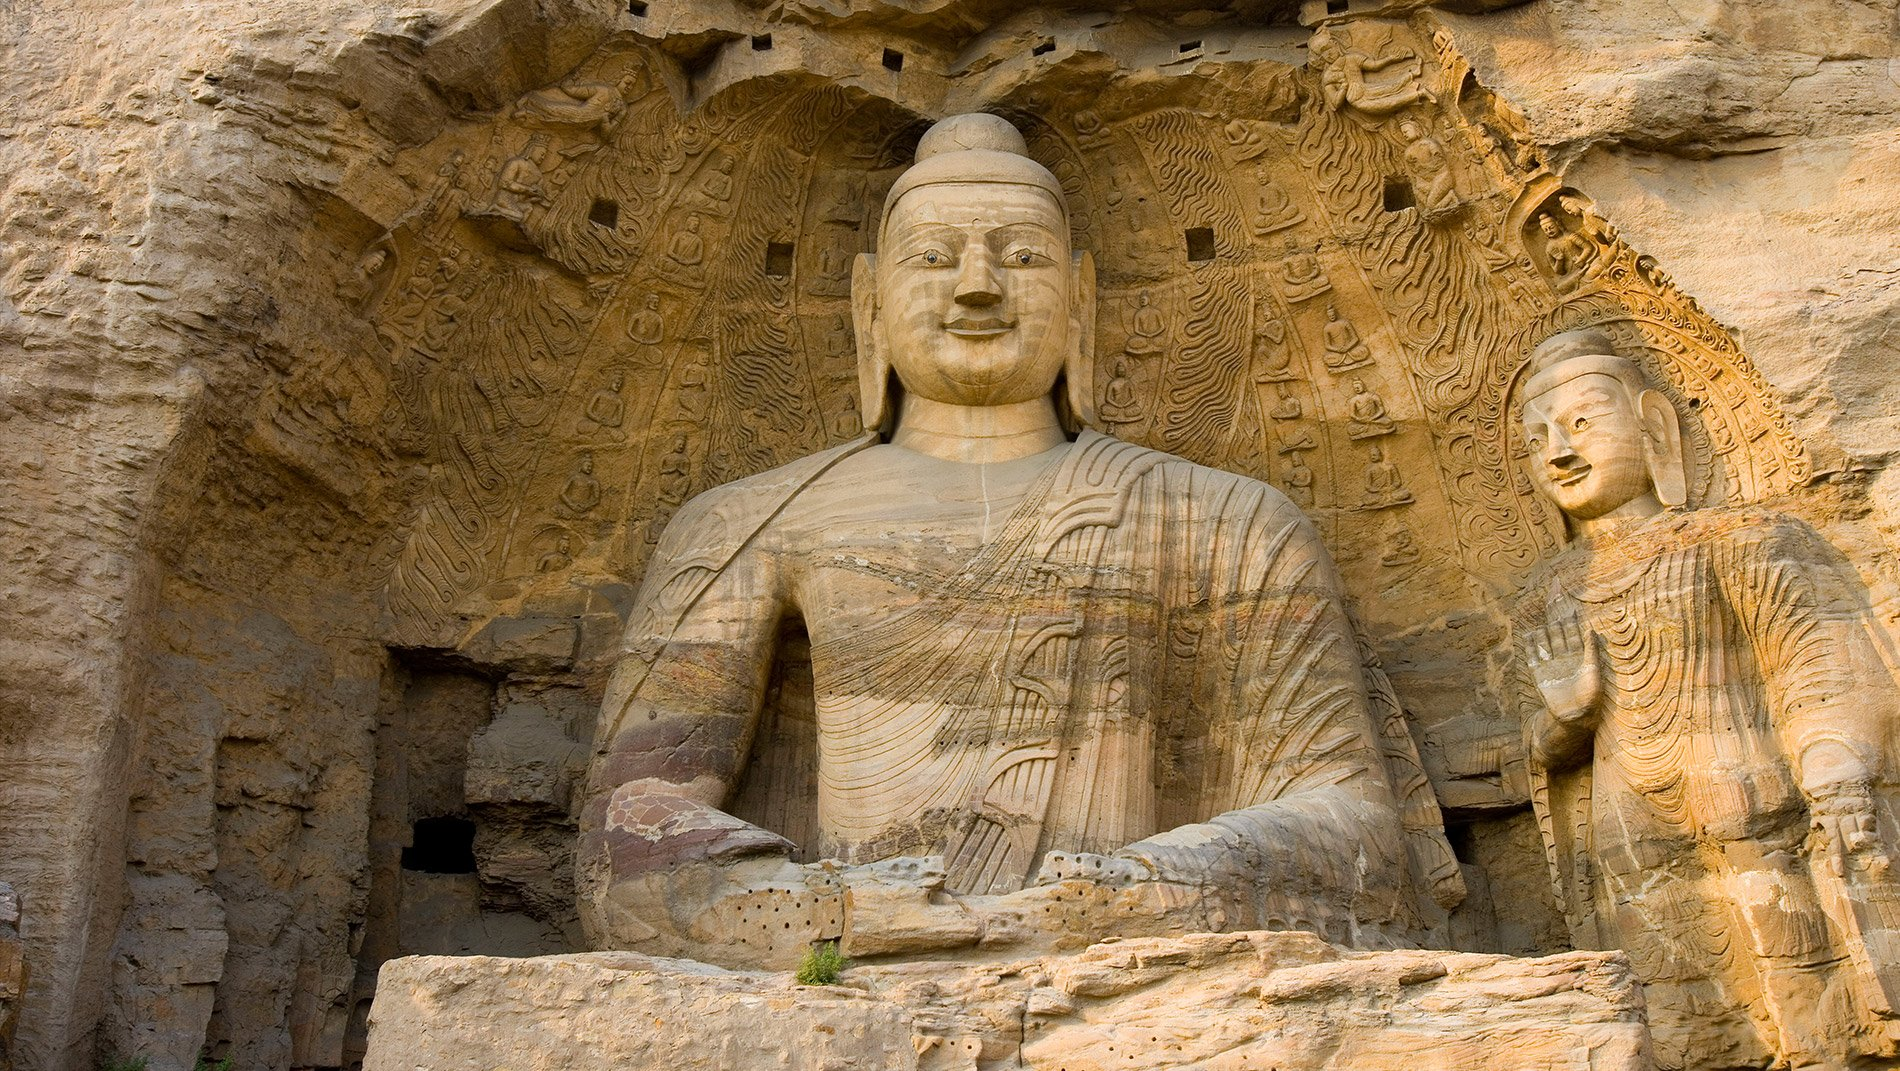 Yungang Caves~With over 250 caves and 50,000 sculptures, carved out over more than a century, the Yungang grottoes are an outstanding achievement of Buddhist architecture and art.